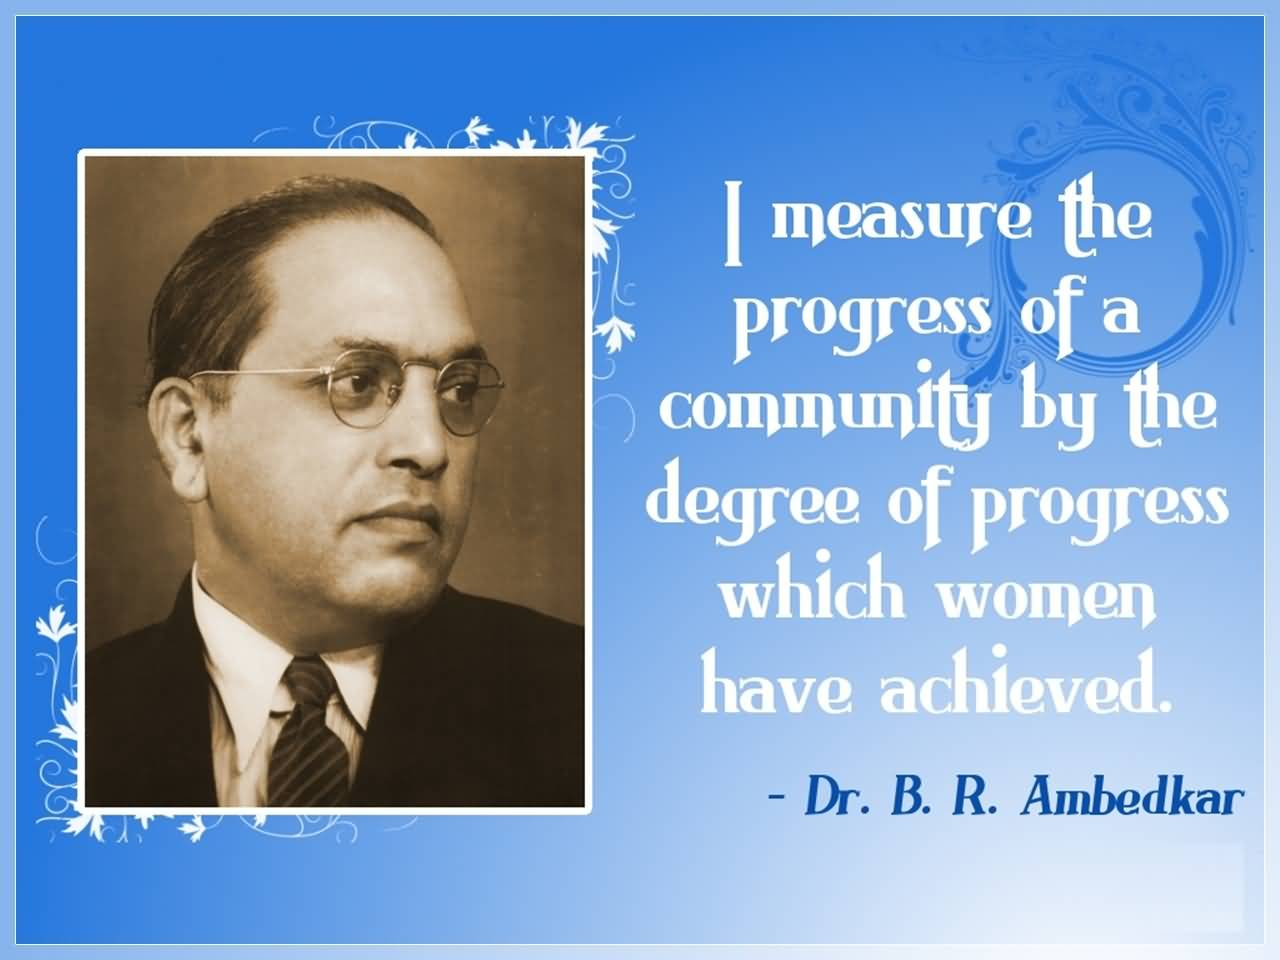 Women Quotes I Measure The Progress Of A Community By The Degree Of Progress Which Women Have Achieved Dr. B. R. Ambedkar